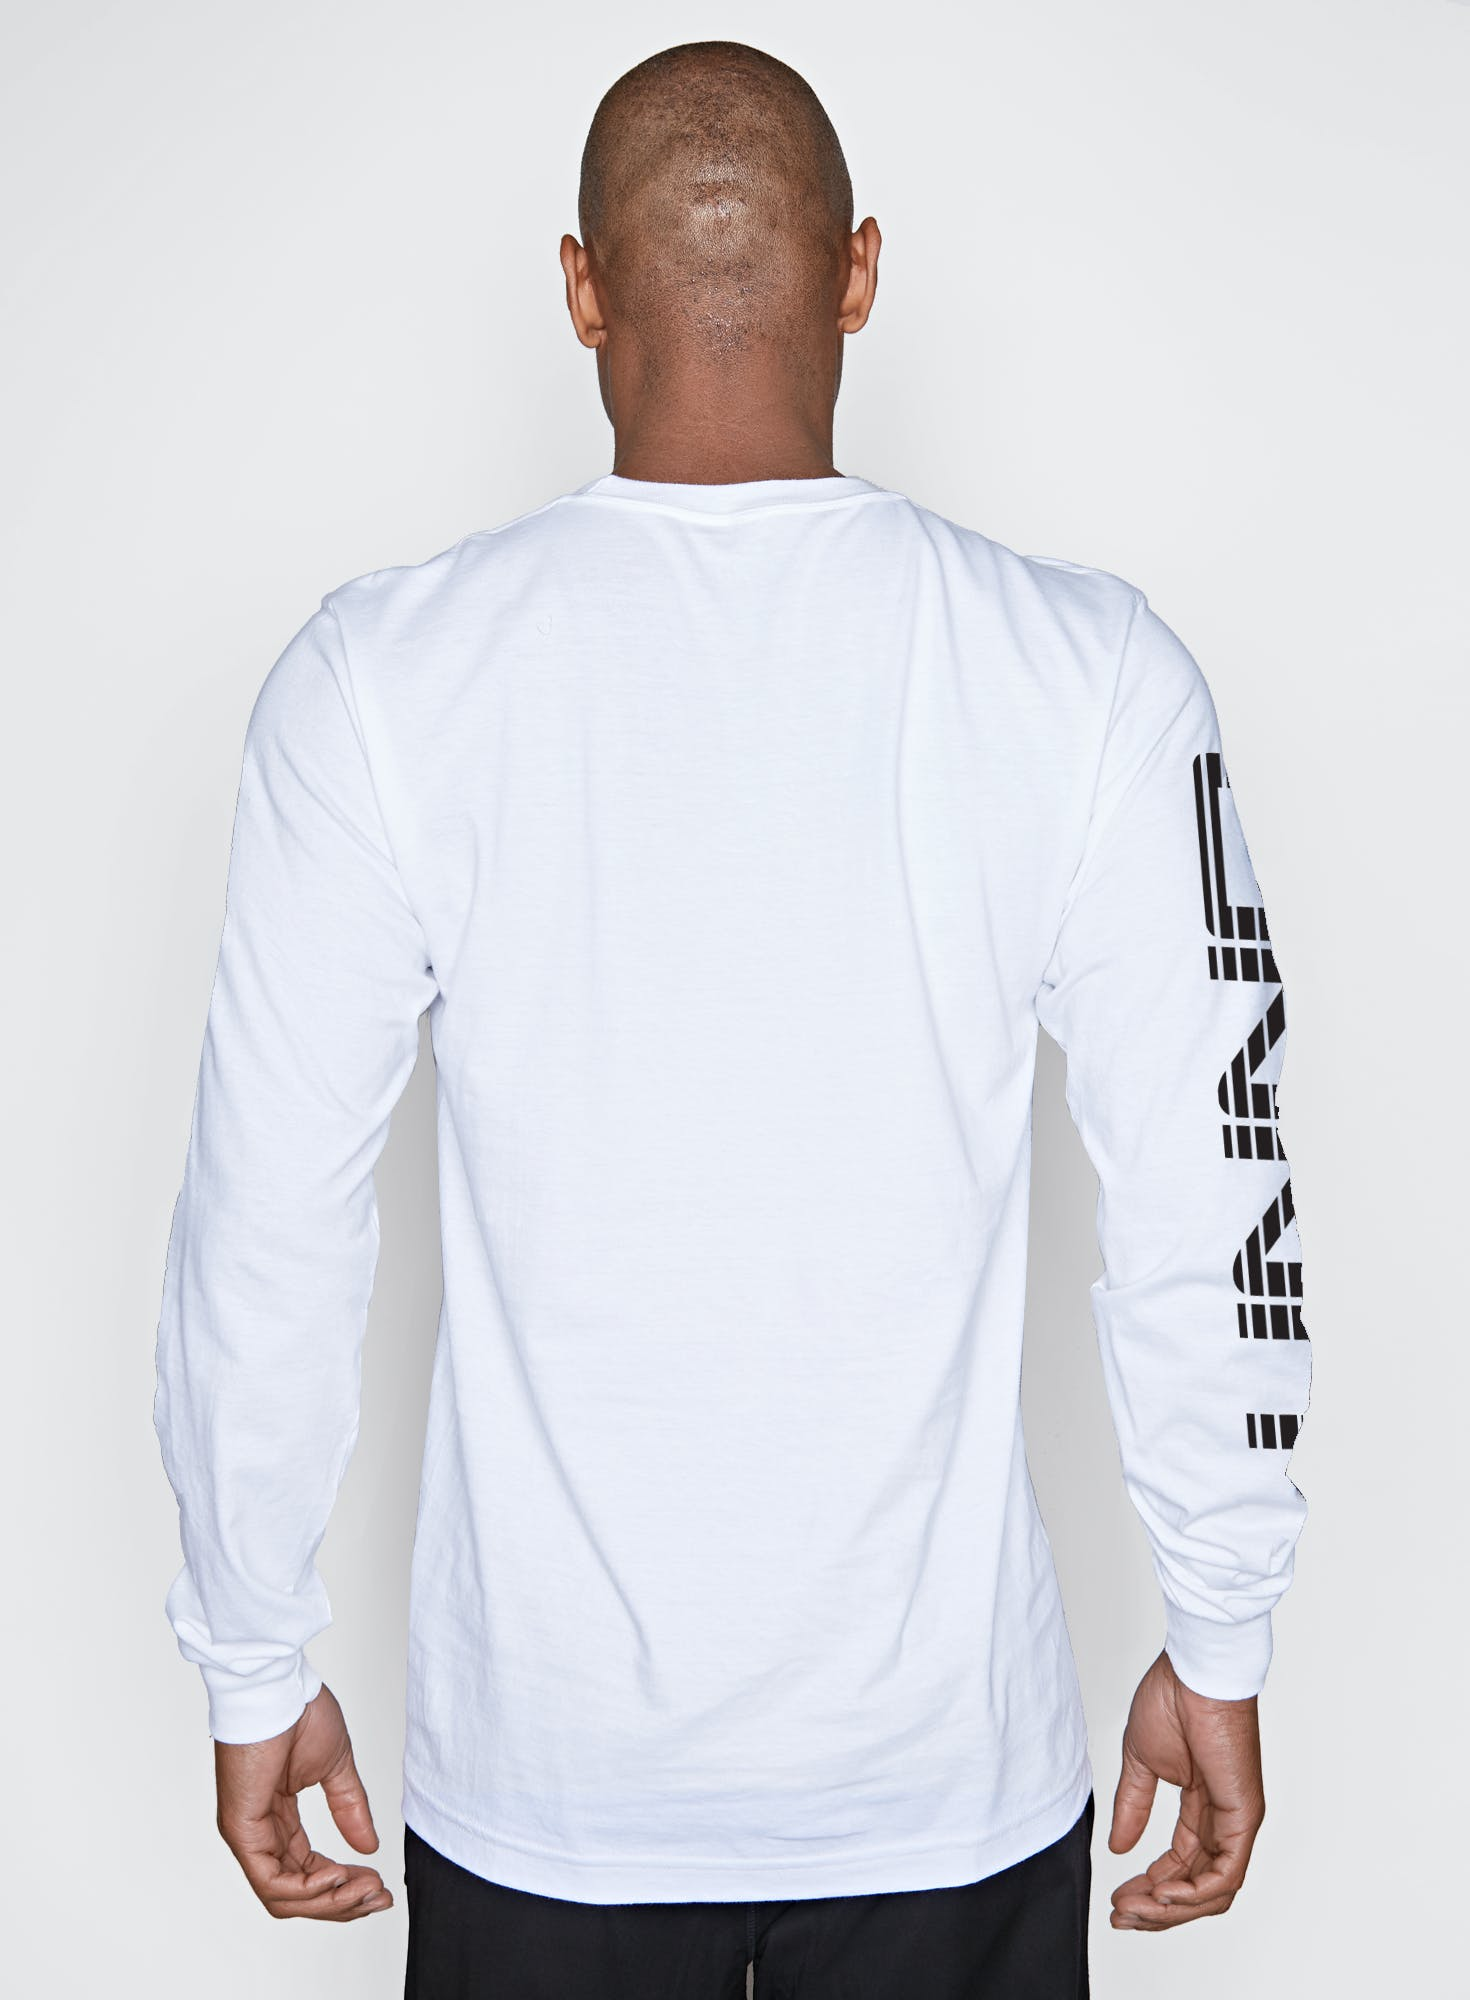 Onnit Linear Long Sleeve T-Shirt Bonus Image